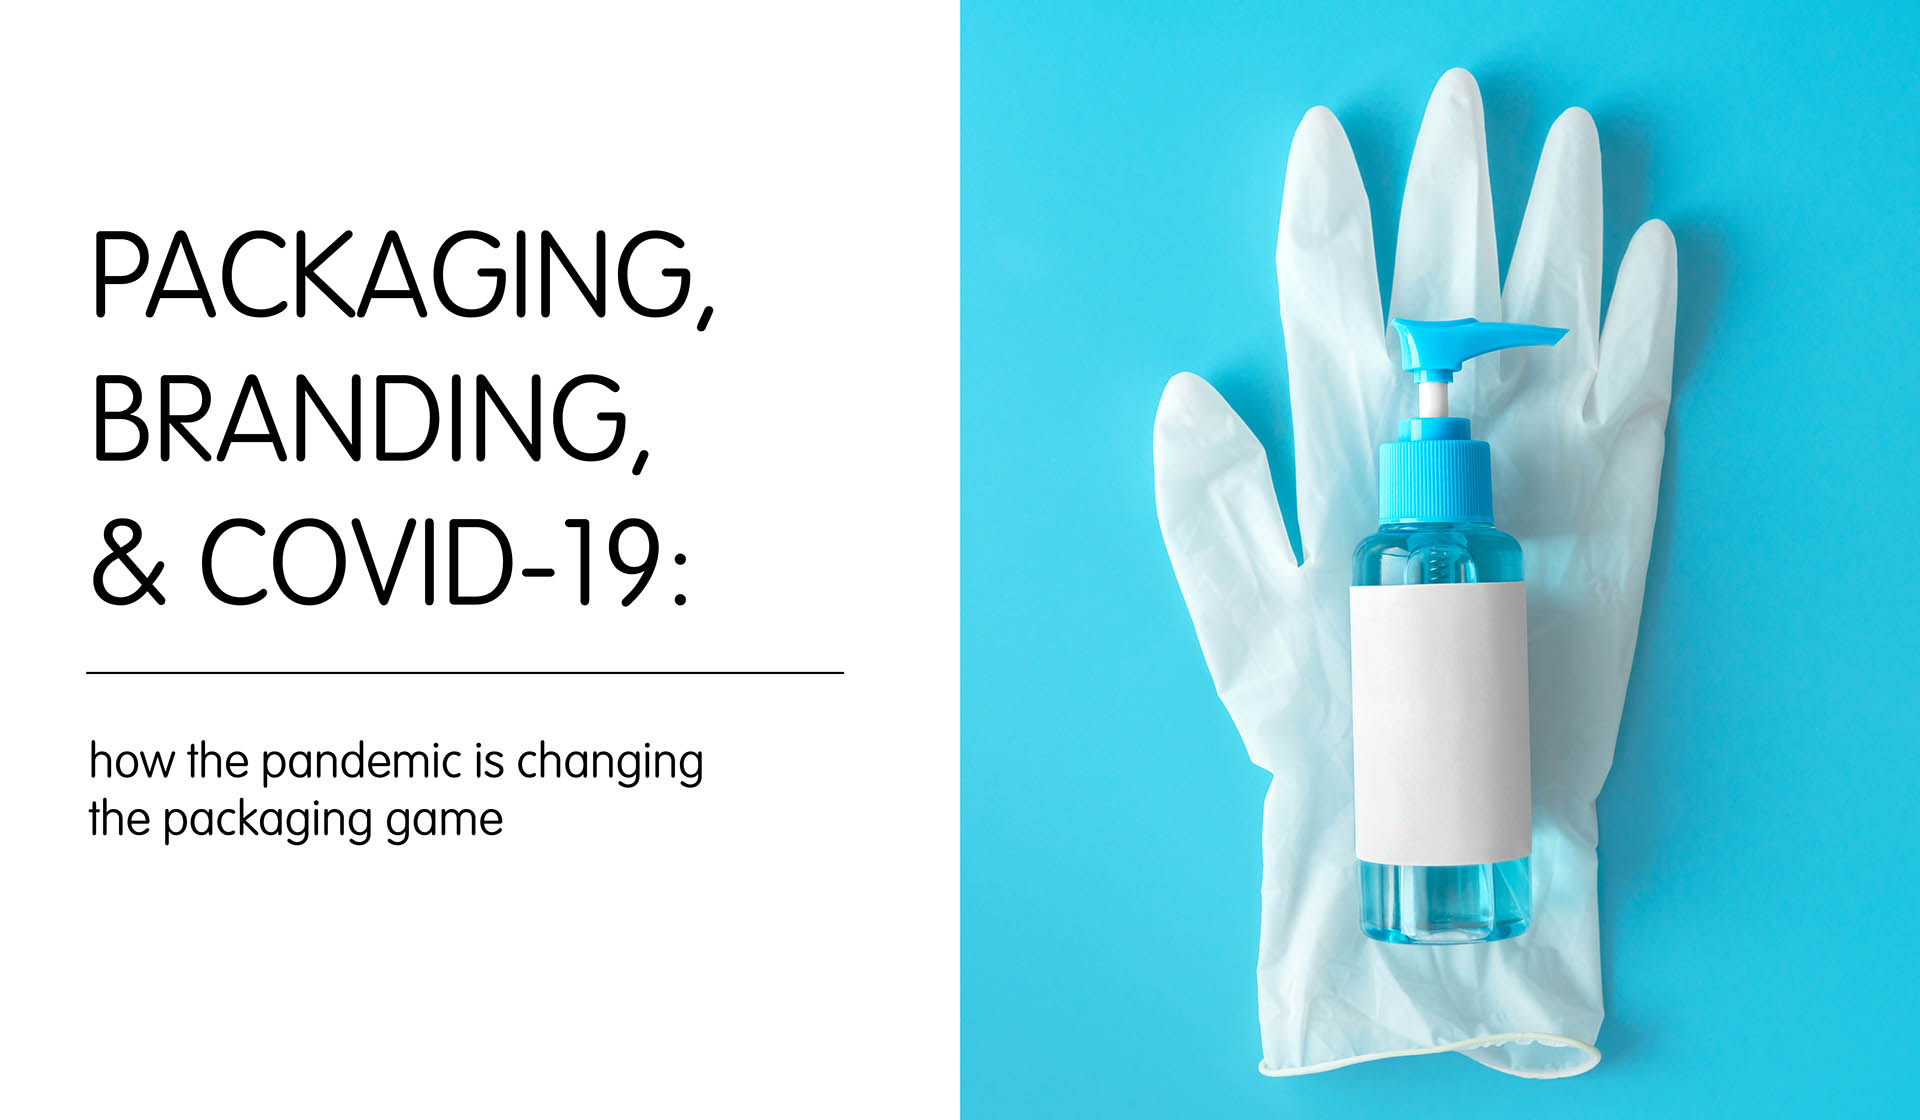 Packaging, Branding, and COVID-19: How the Pandemic Is Changing the Packaging Game